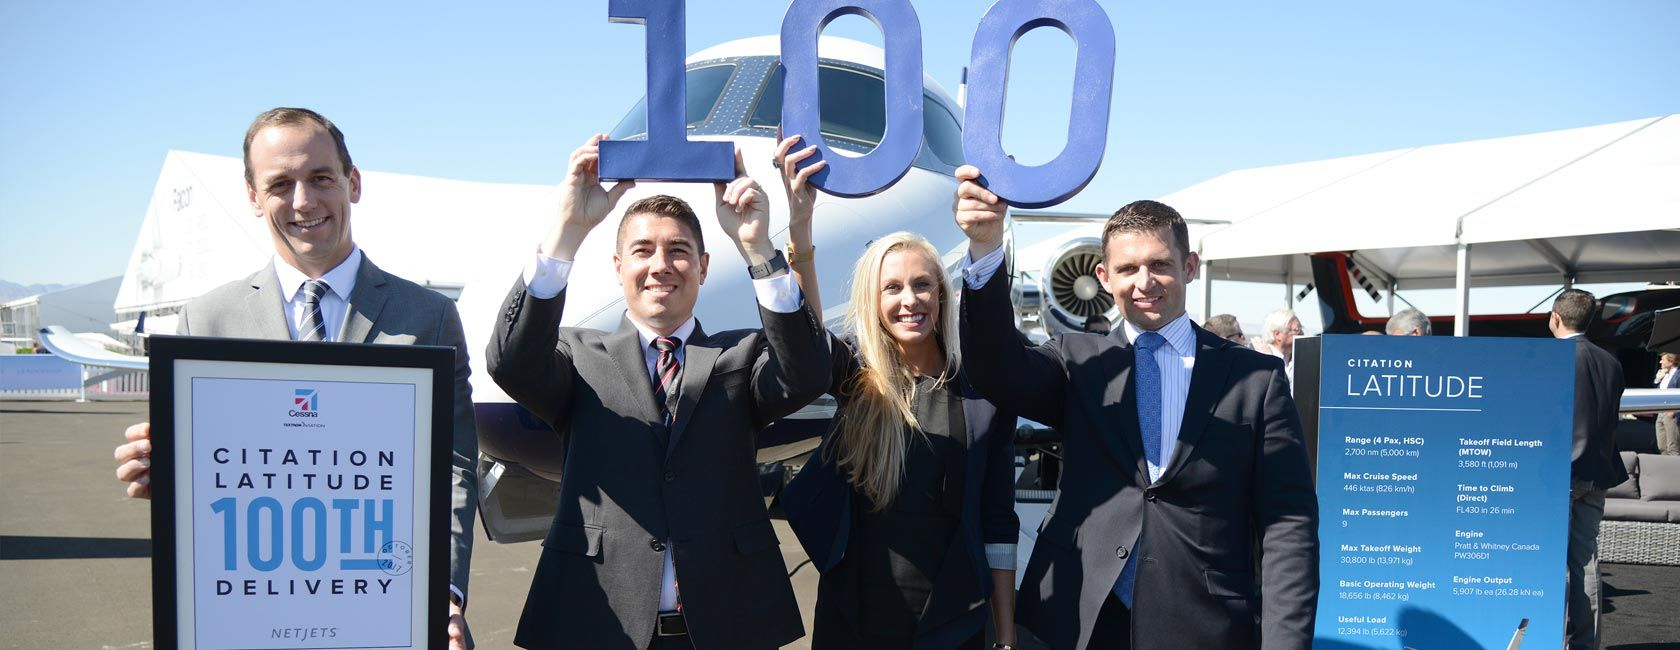 Cessna Citation Latitude Reaches 100th Delivery Milestone